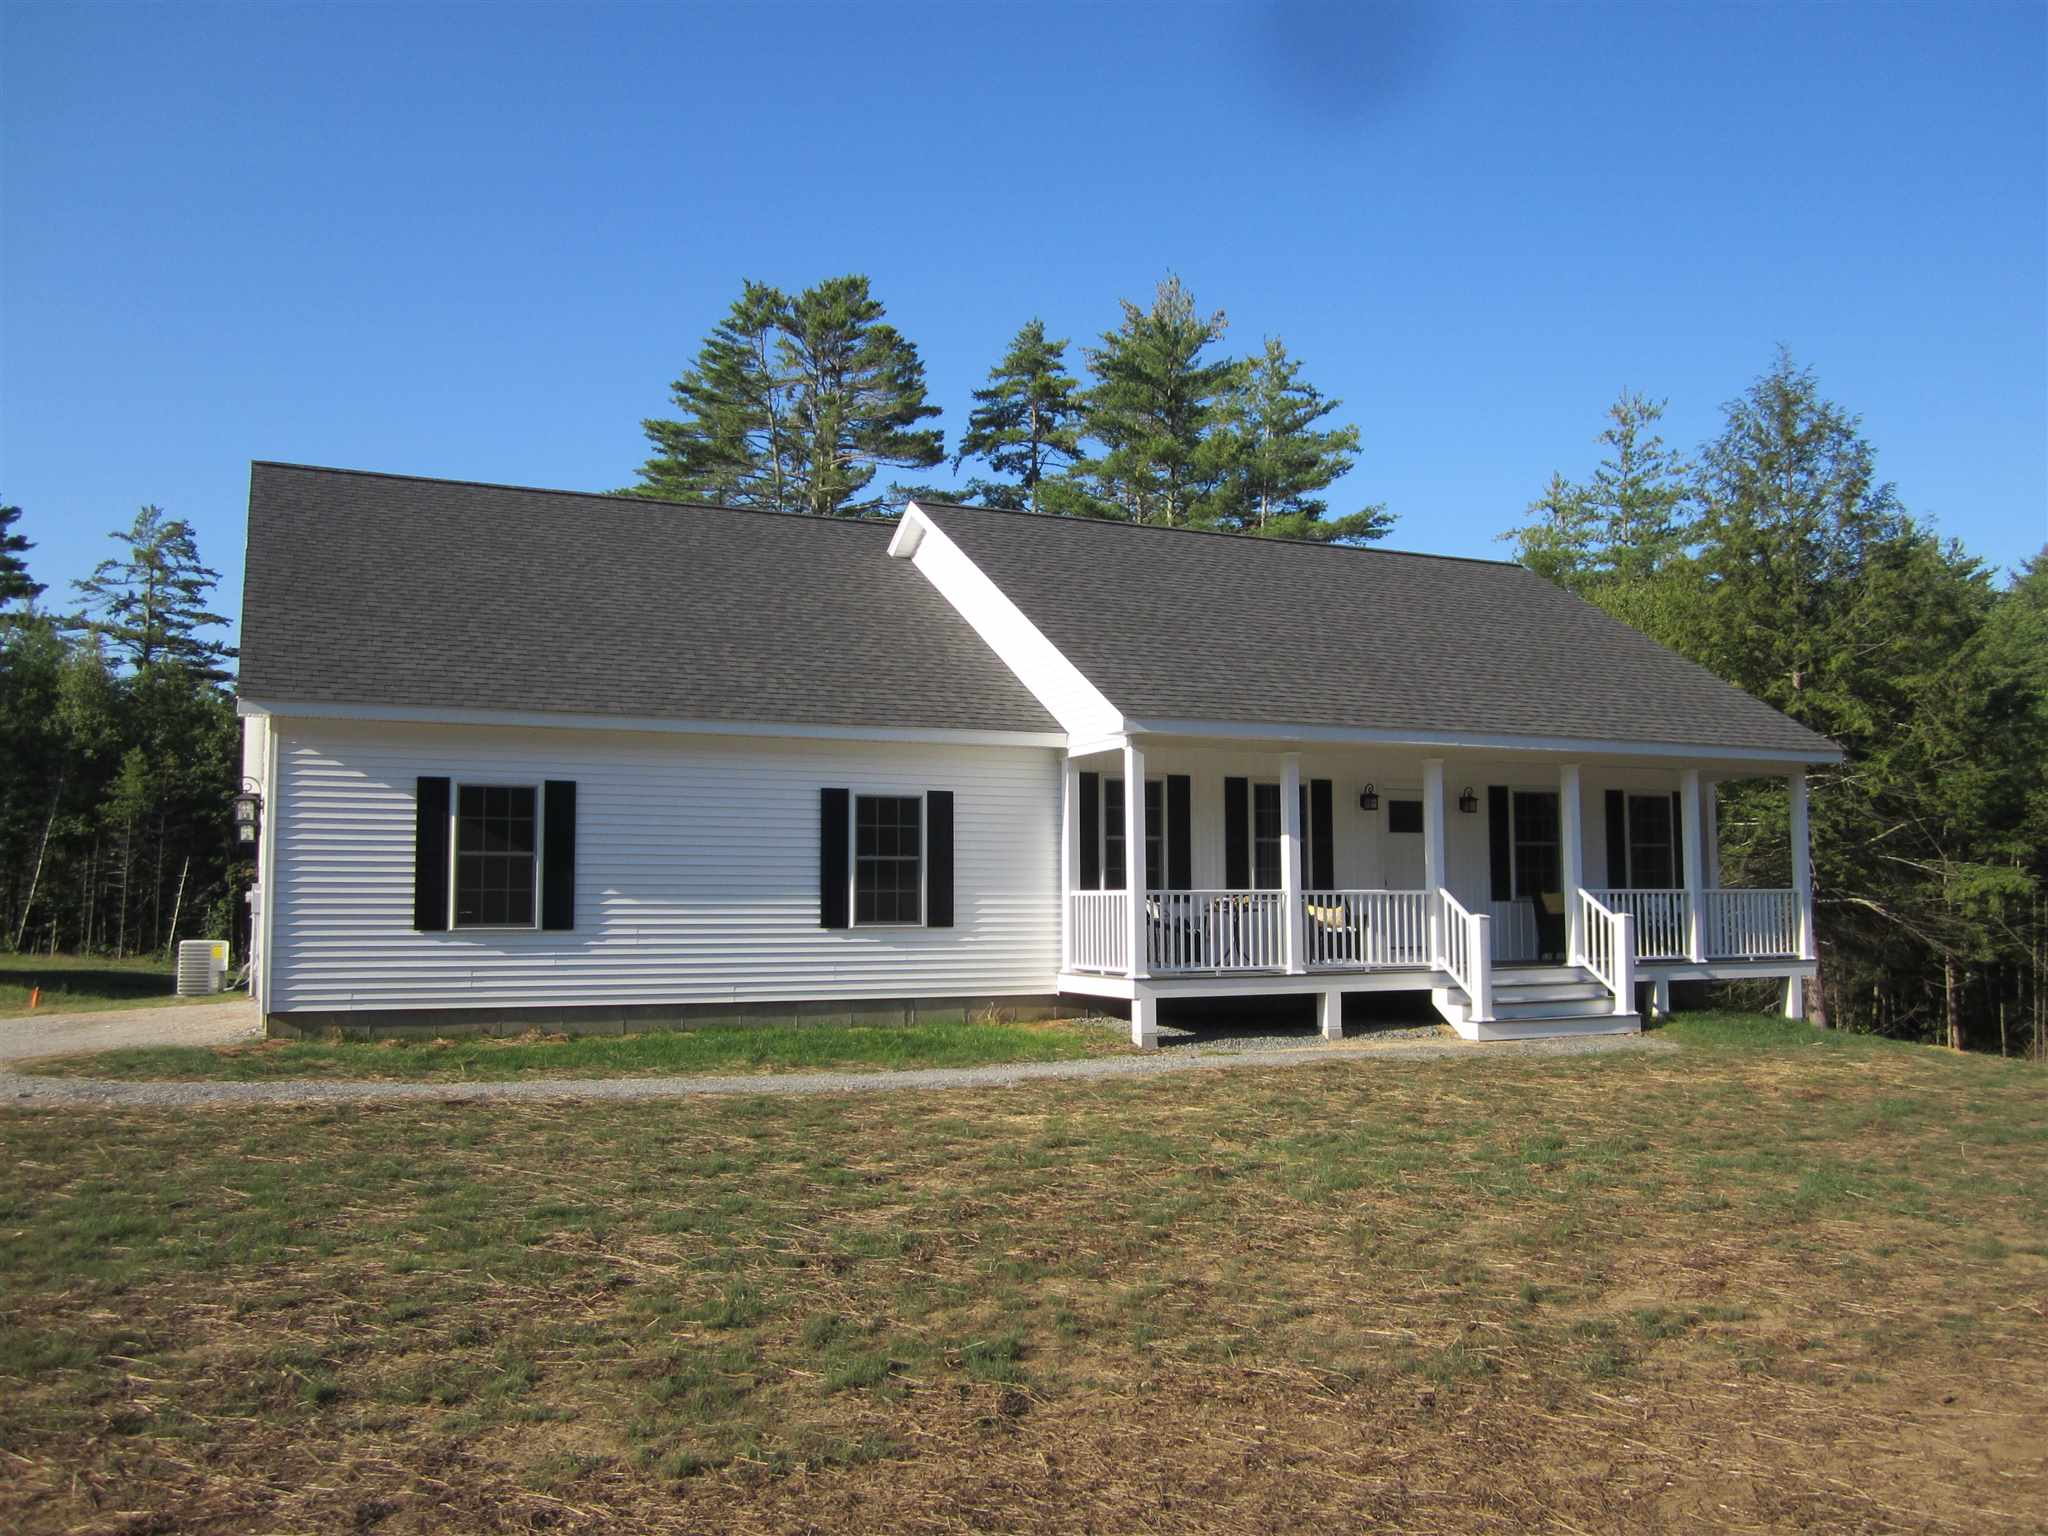 MLS 4737303: 0 Goodell Avenue, Swanzey NH